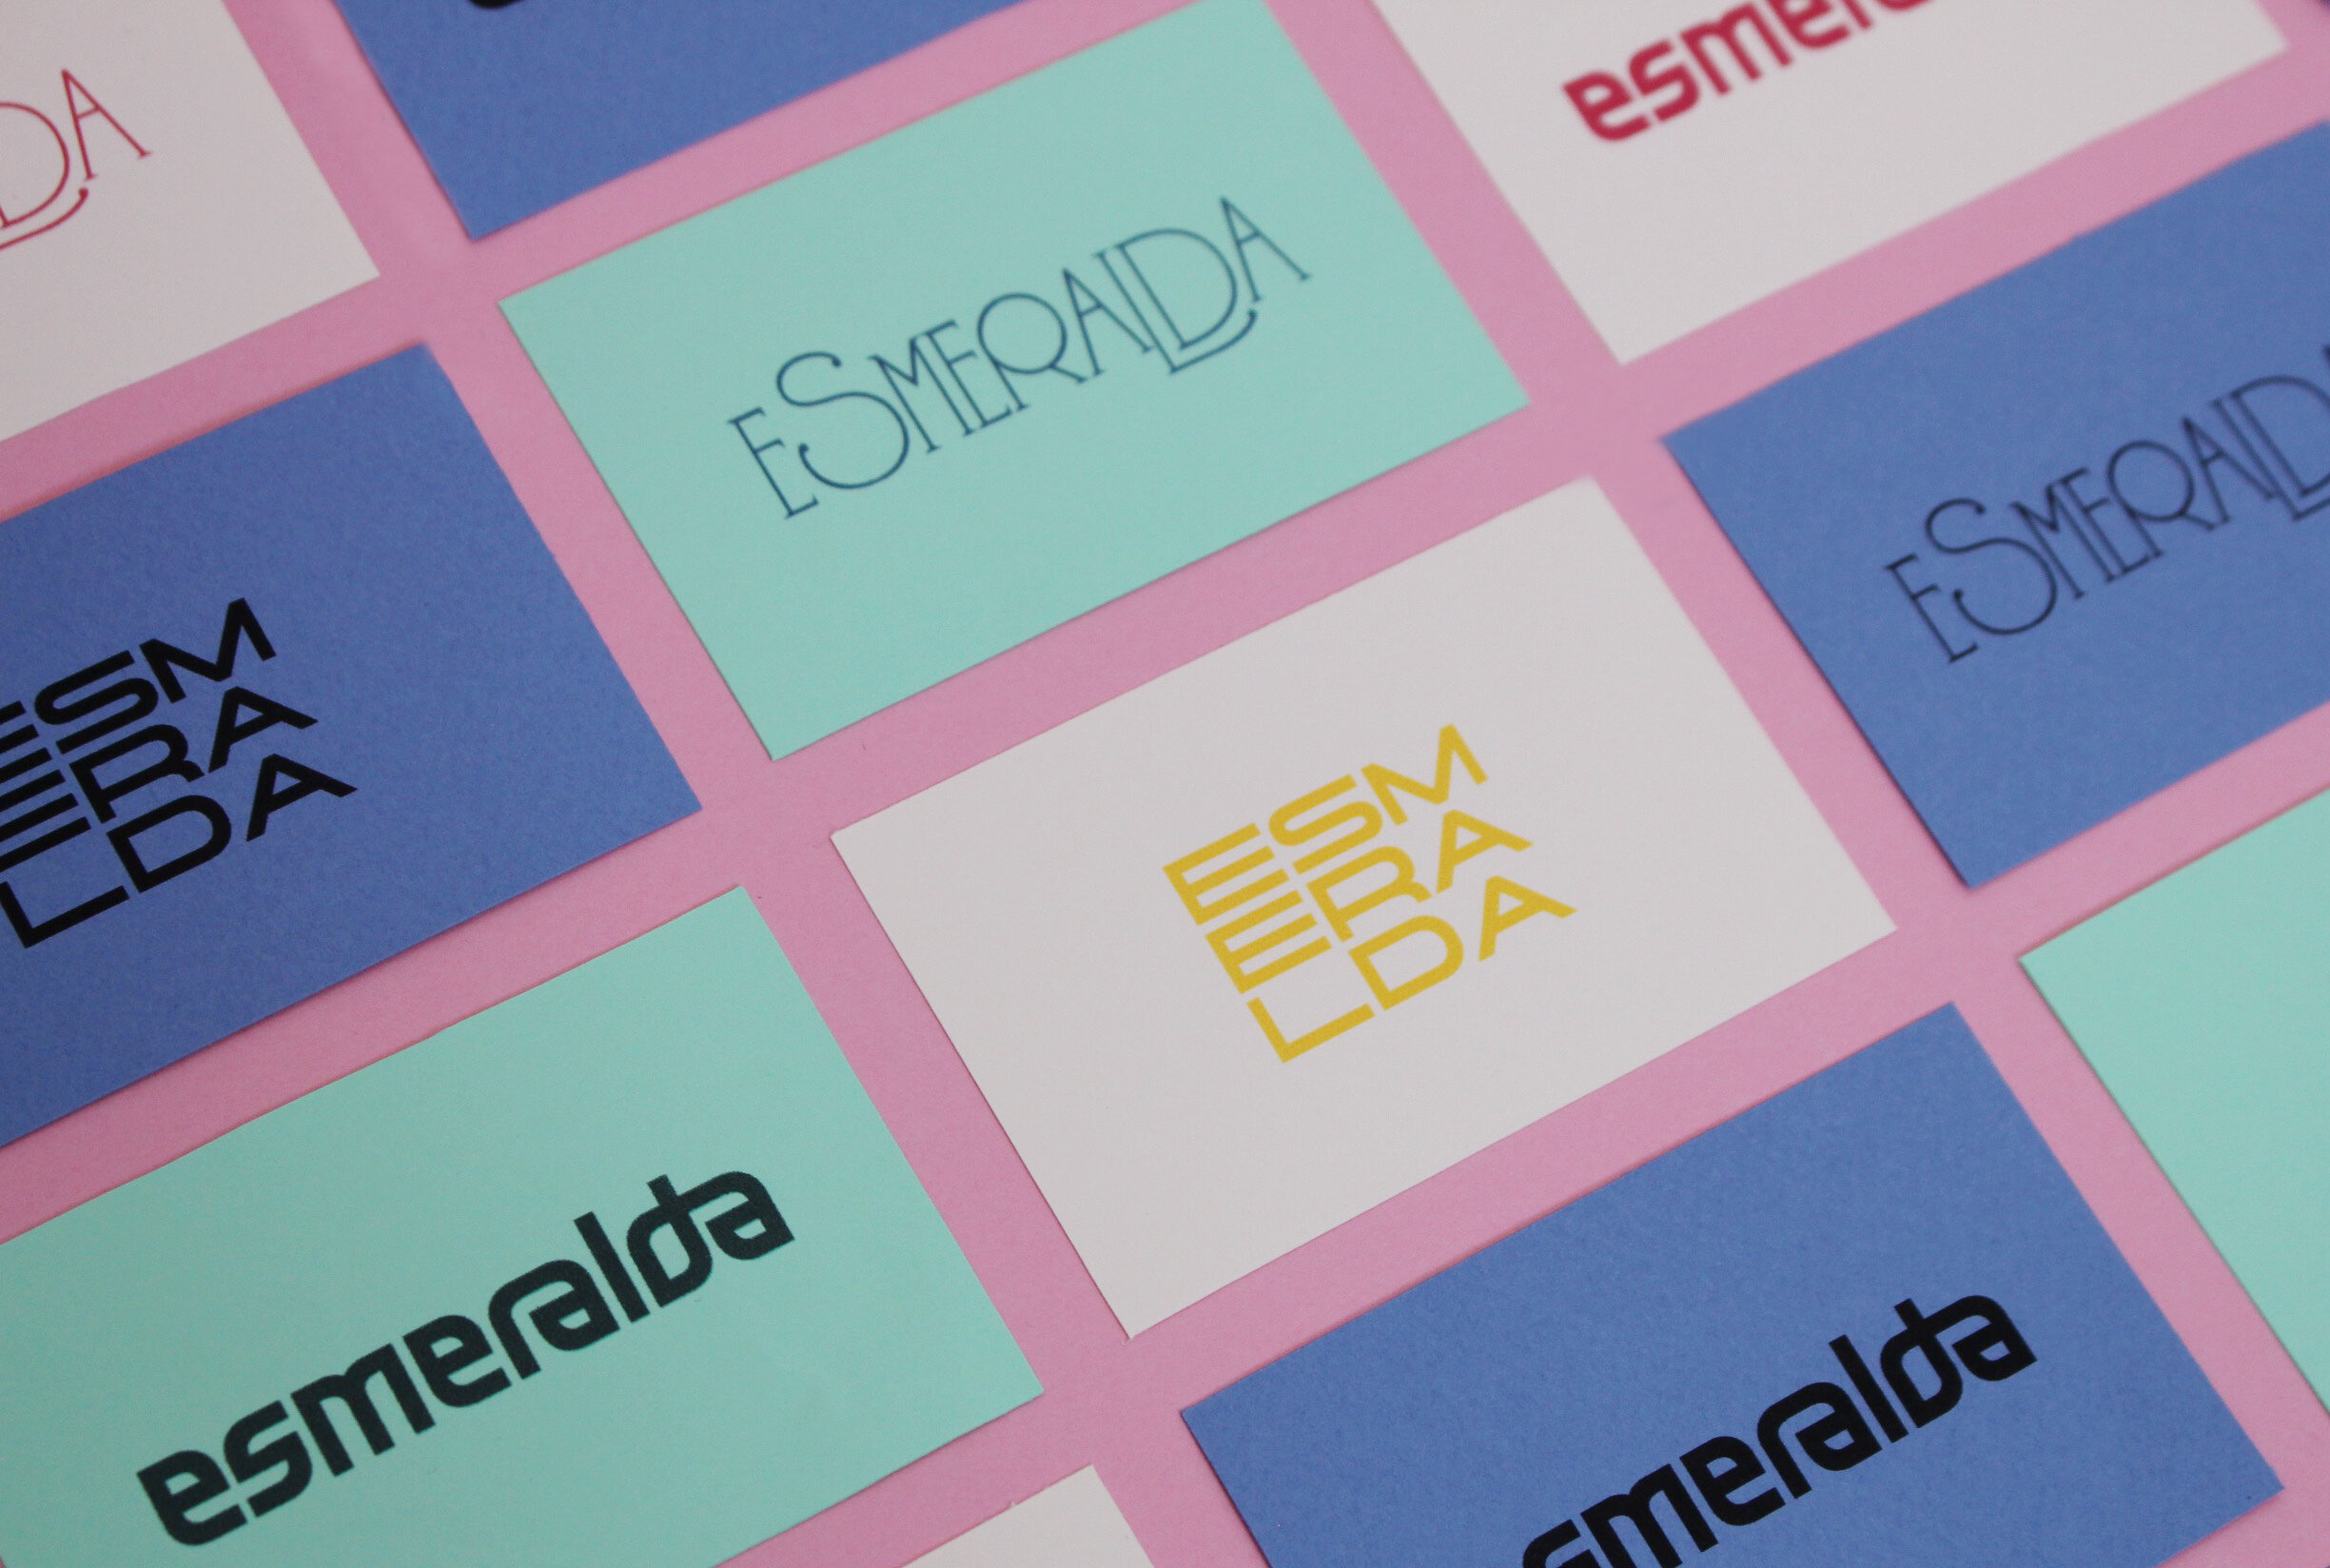 Esmeralda Lettering ♣︎  A project with three different lettering interpretations of the same word.